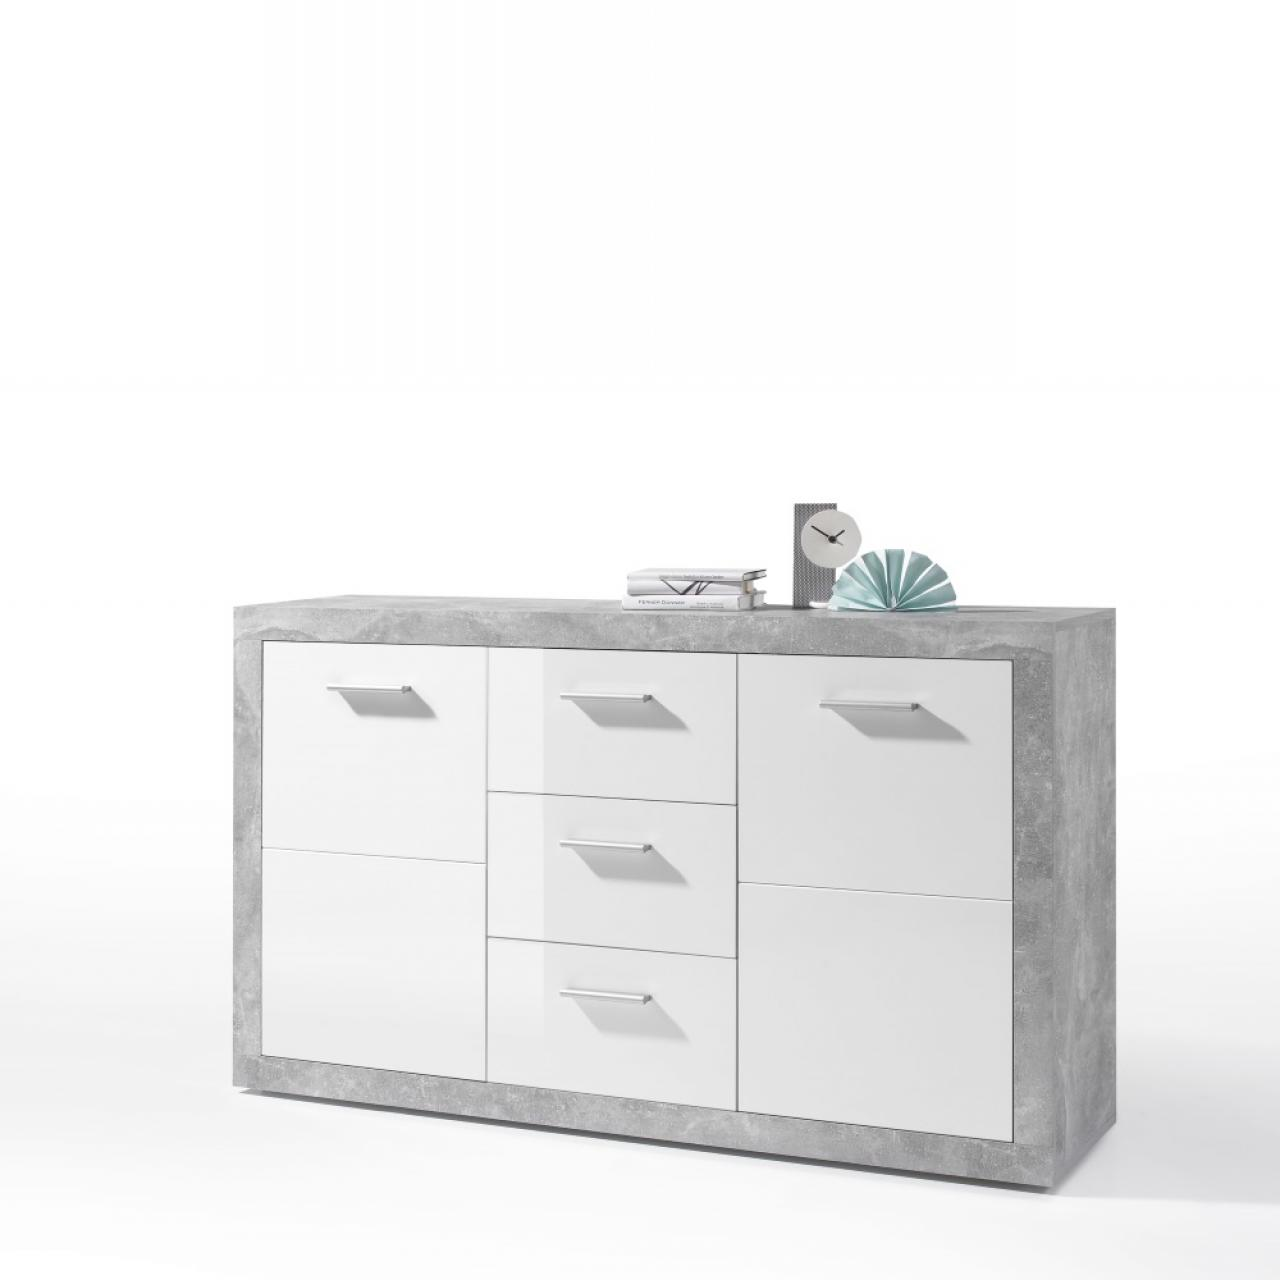 Sideboard Stone 44-671-D5-3